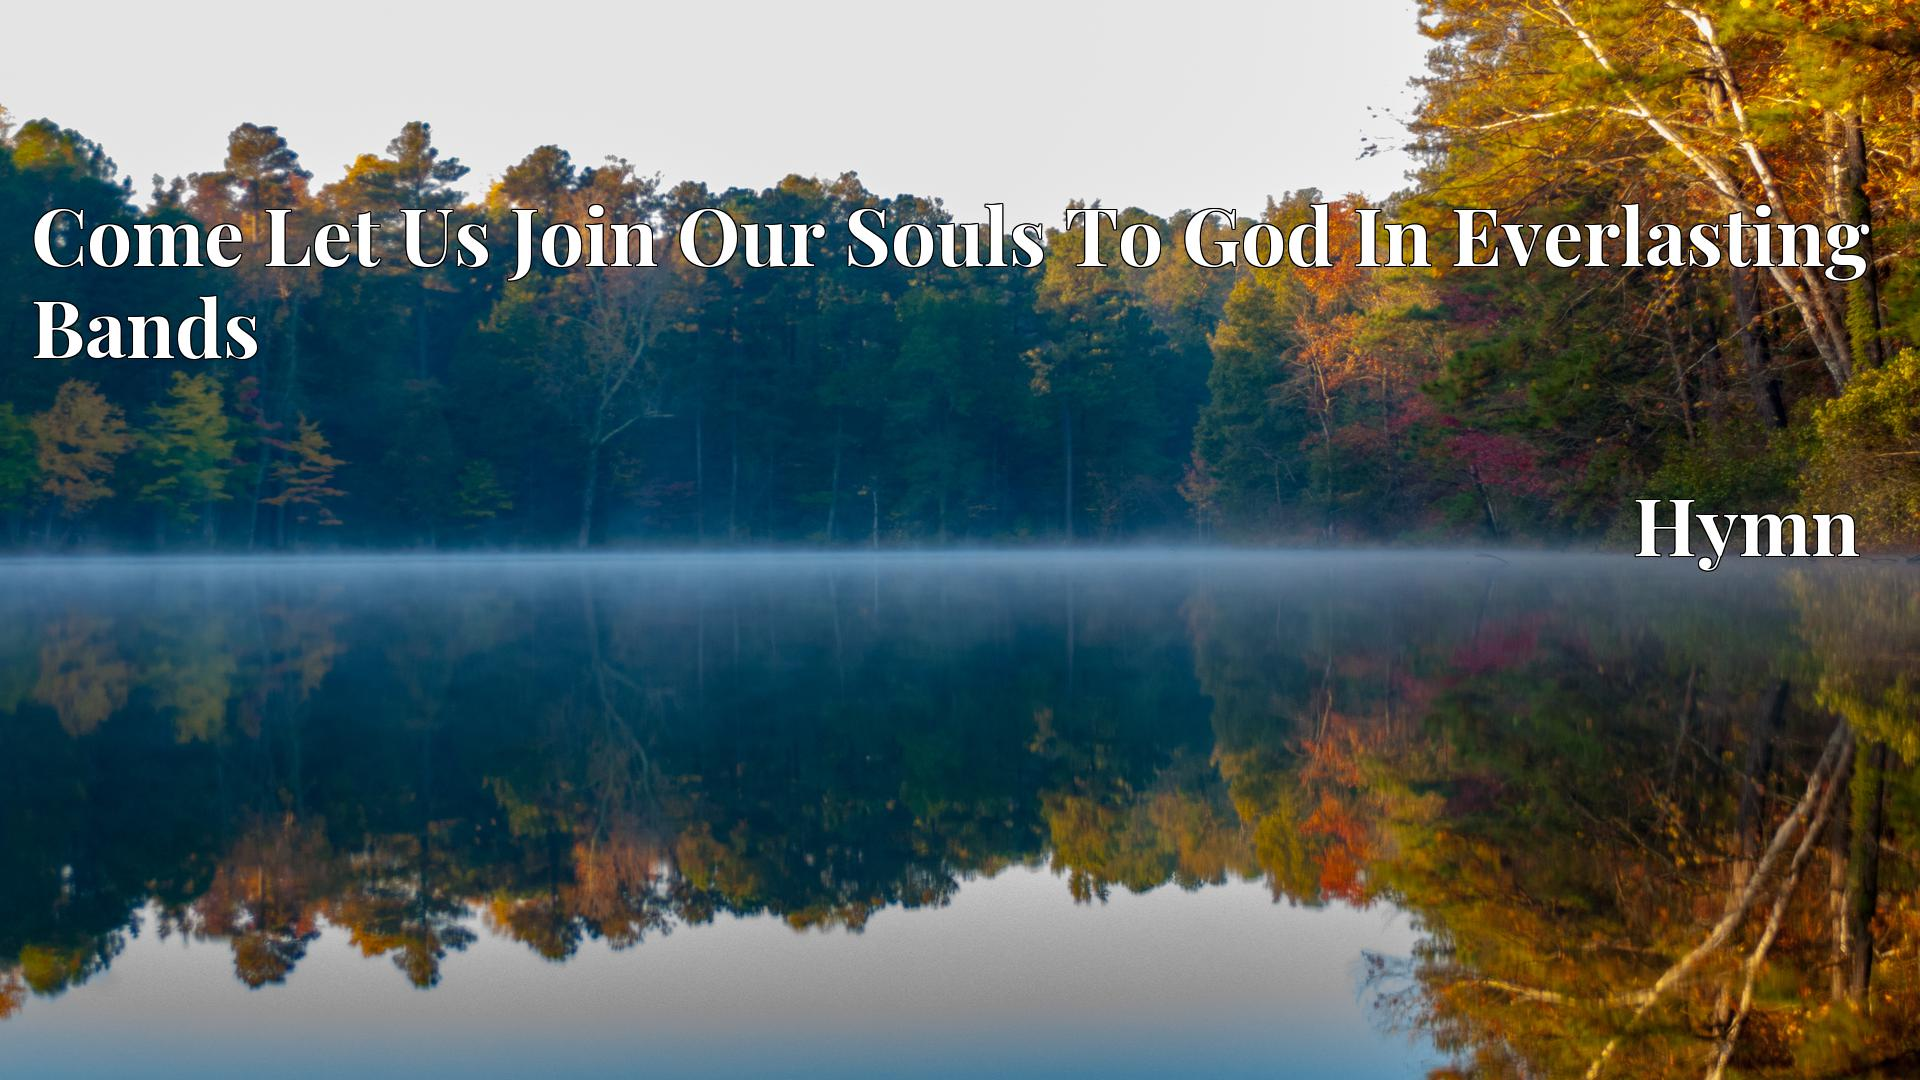 Come Let Us Join Our Souls To God In Everlasting Bands - Hymn